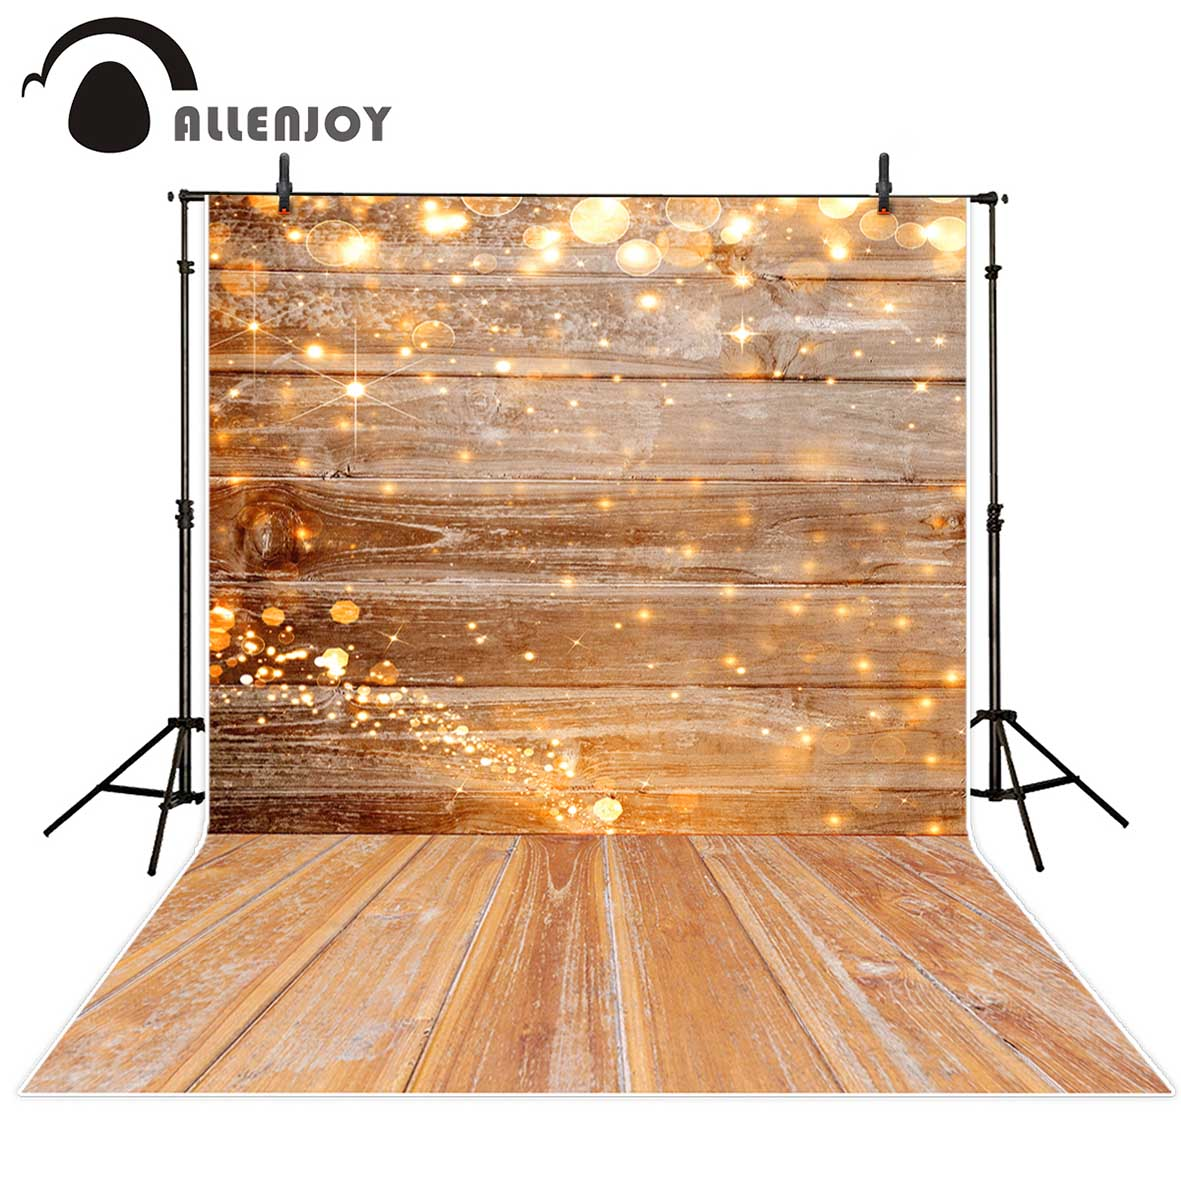 Allenjoy photography backdrop yellow halo wood christmas decor background photobooth photo studio decoration photo shoot christmas backdrop photography allenjoy snow cap winter snowflakes background photographic studio vinyl children s camera photo